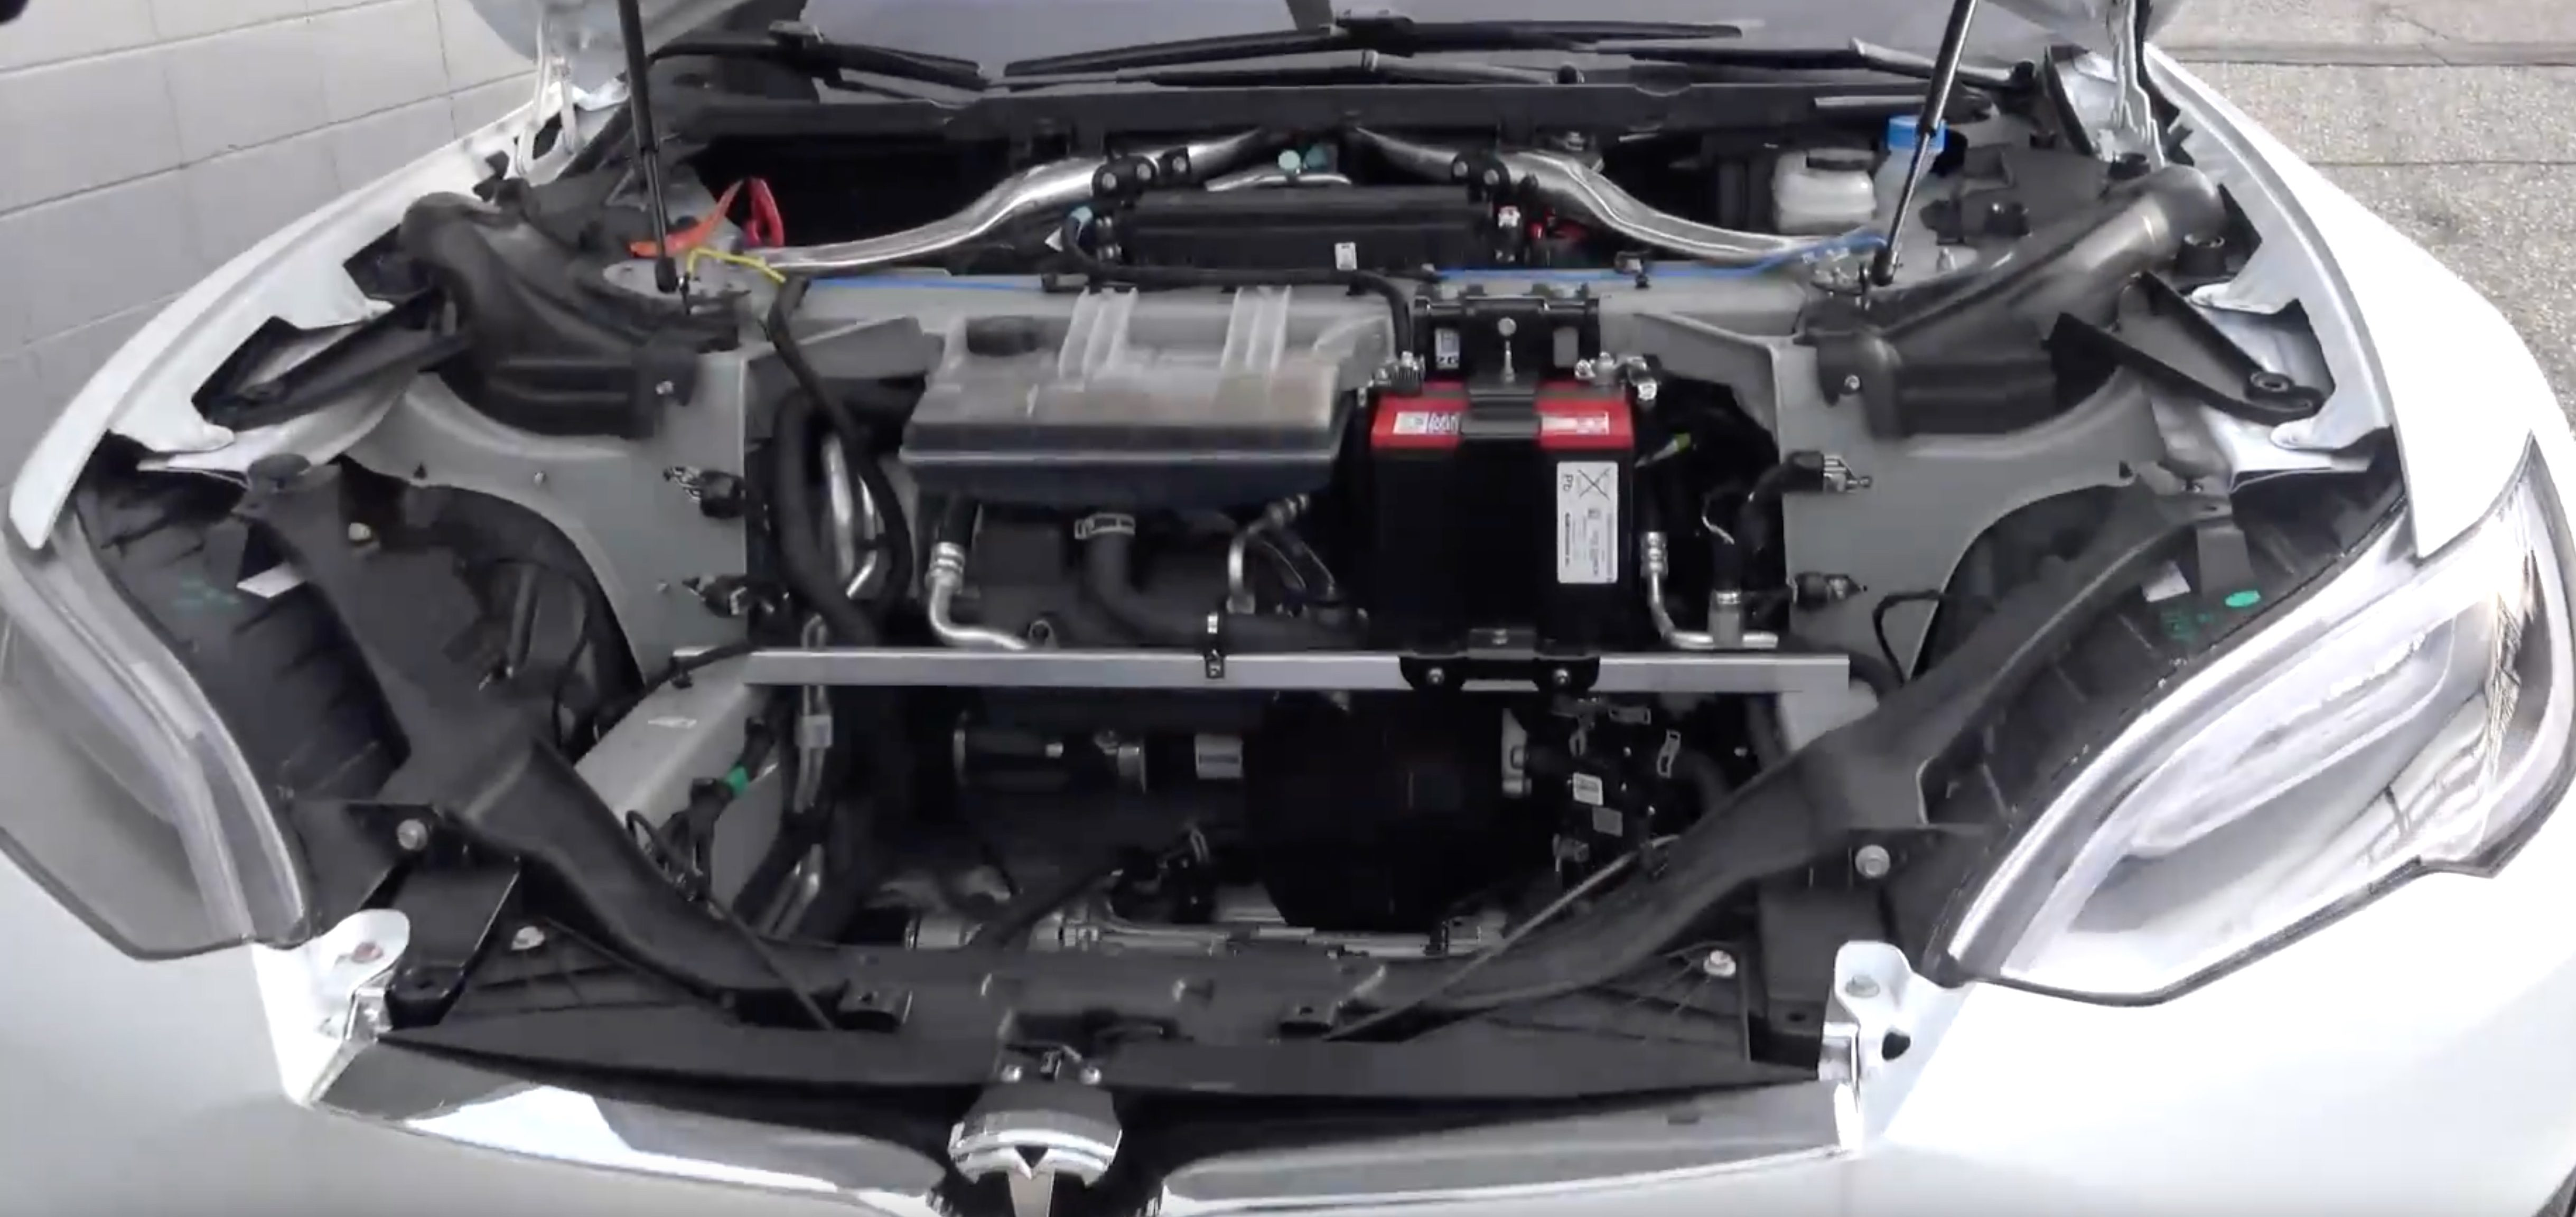 Tesla Model S P100d 1 4 Mile Record Broken For Third Time In A Week